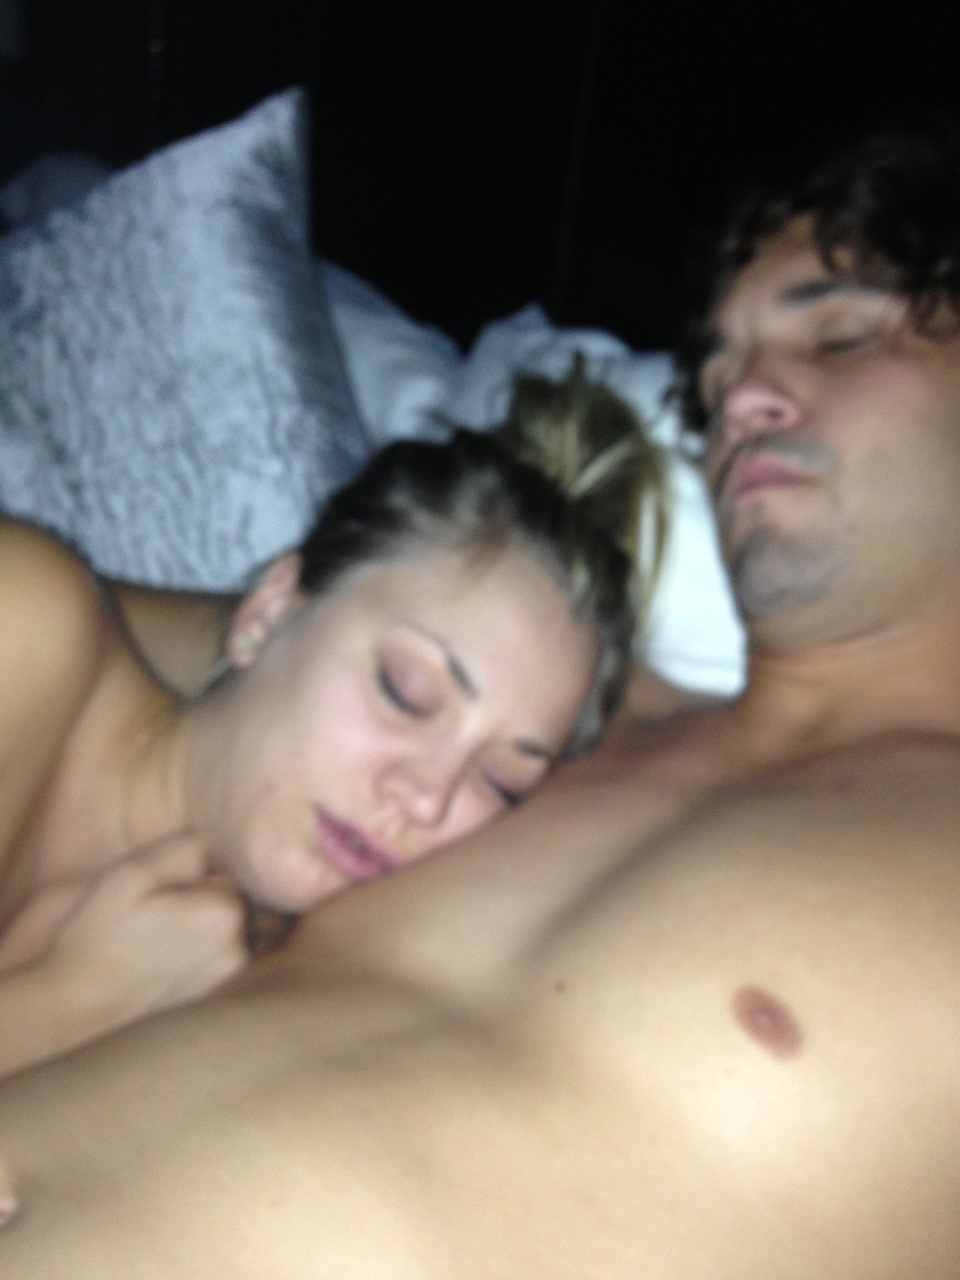 Kaley cuoco leaked videos 7